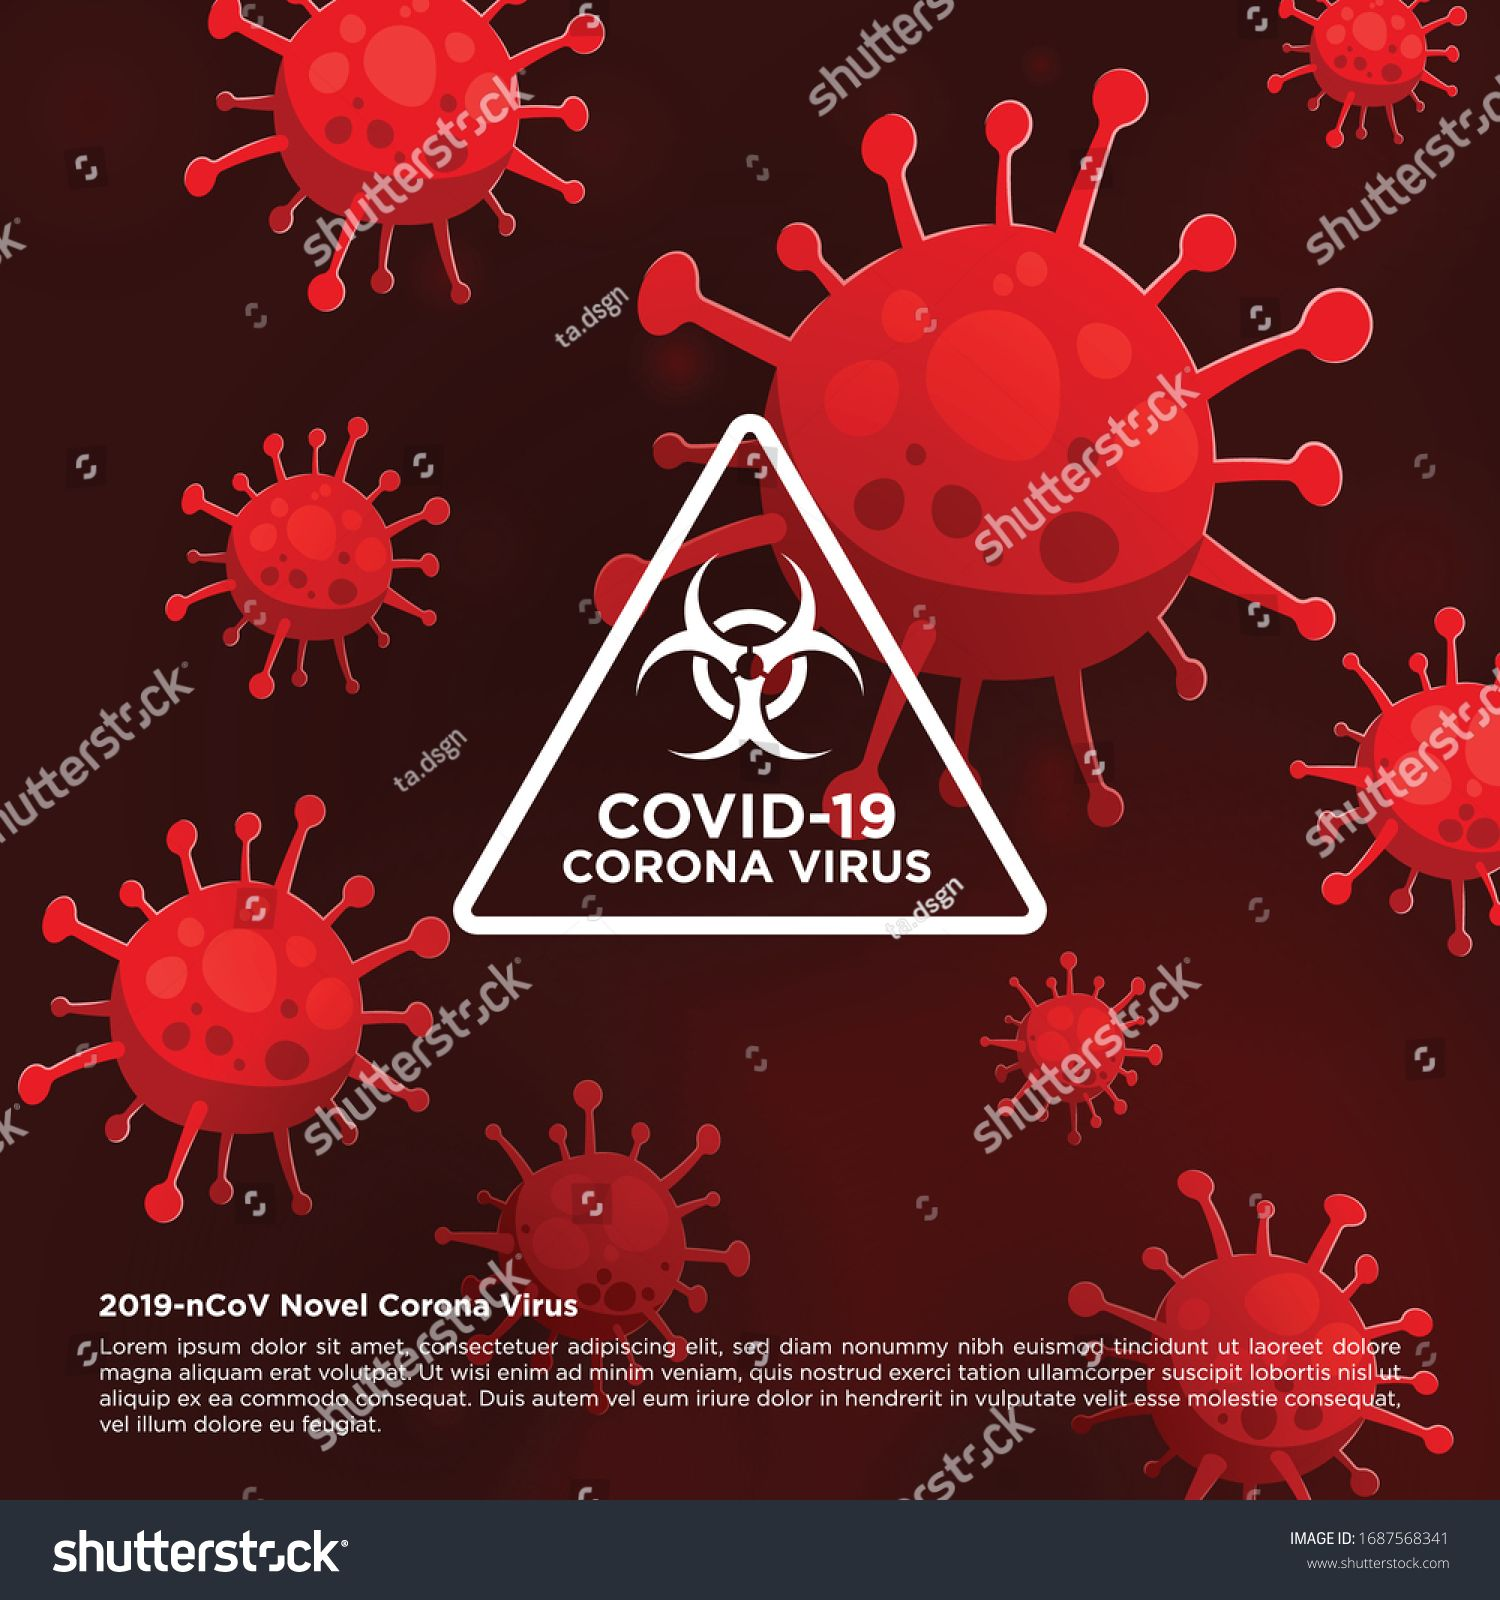 Pin On Covid 19 Corona Virus Disease Banner